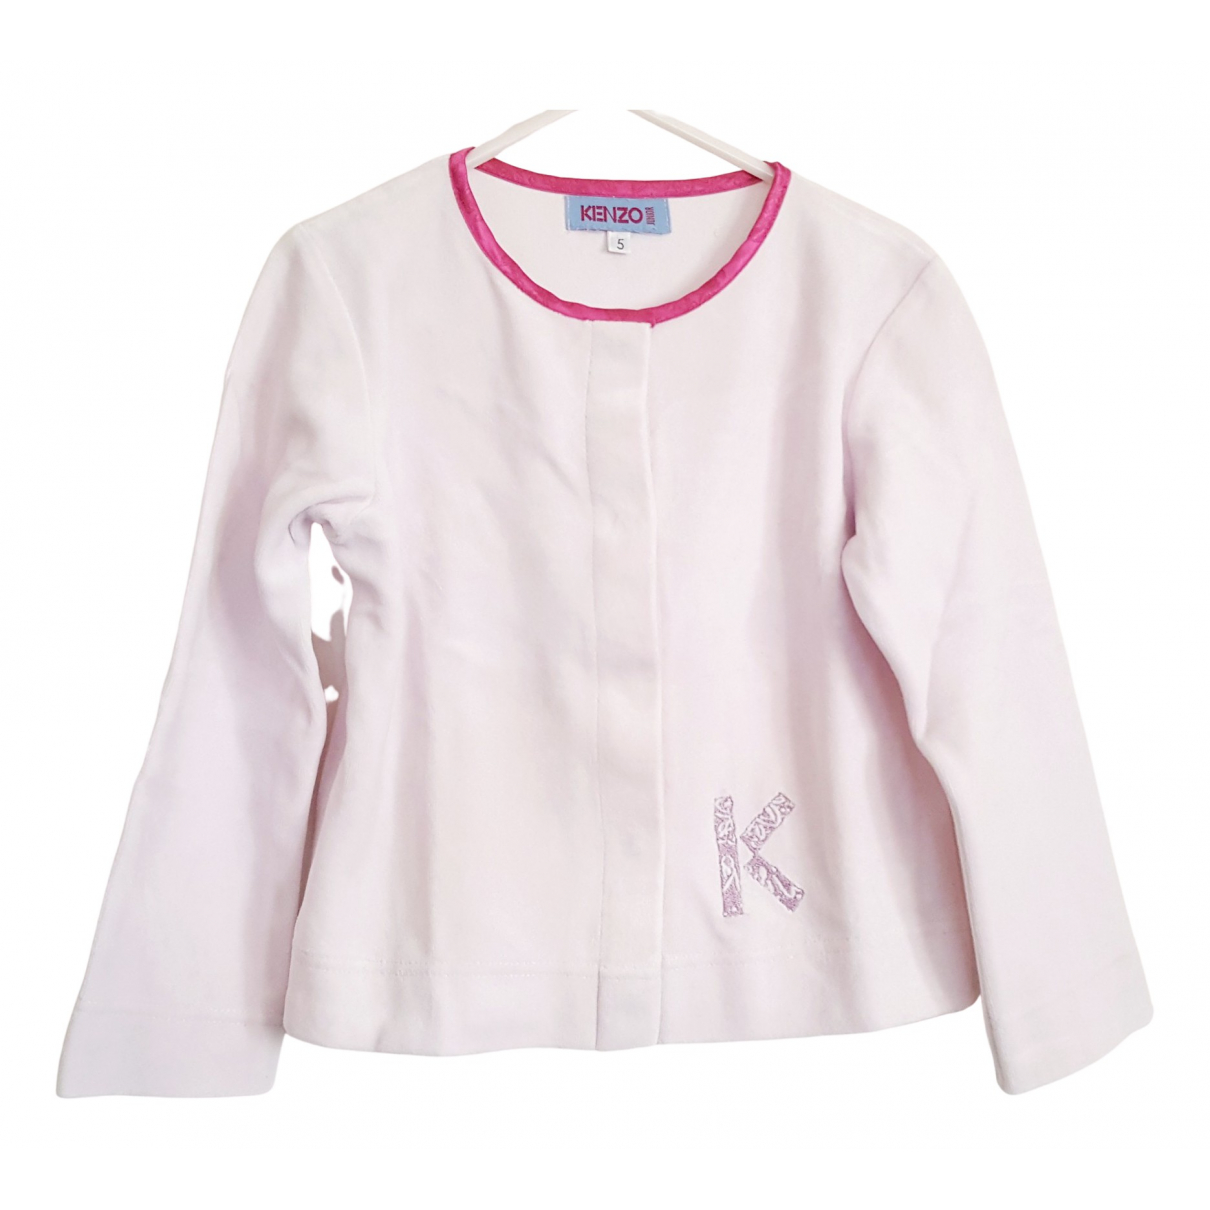 Kenzo \N Pink Cotton Knitwear for Kids 5 years - up to 108cm FR